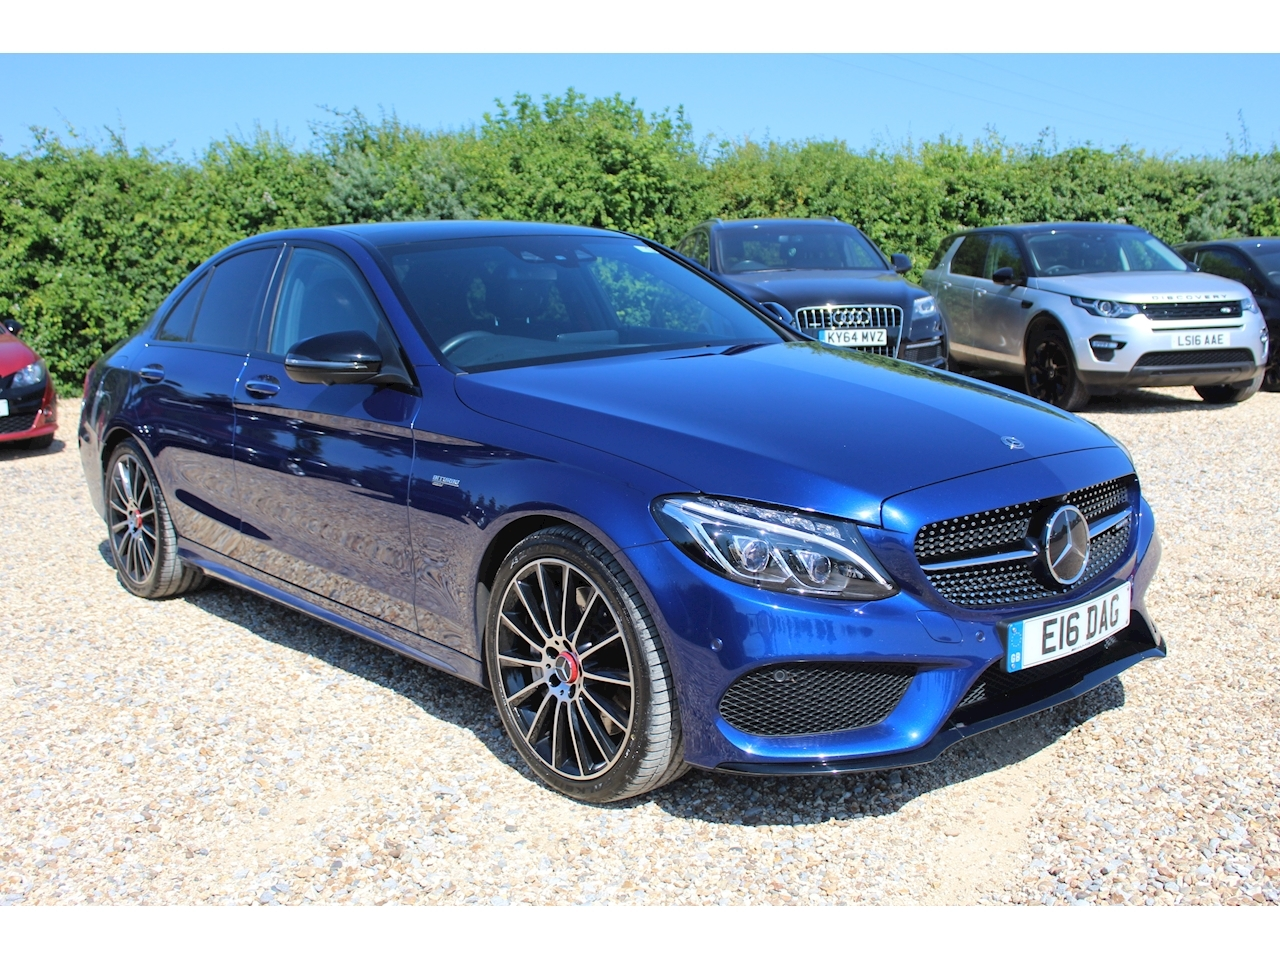 Mercedes-Benz C Class Amg C 43 4Matic Premium Plus Saloon 3.0 Automatic Petrol